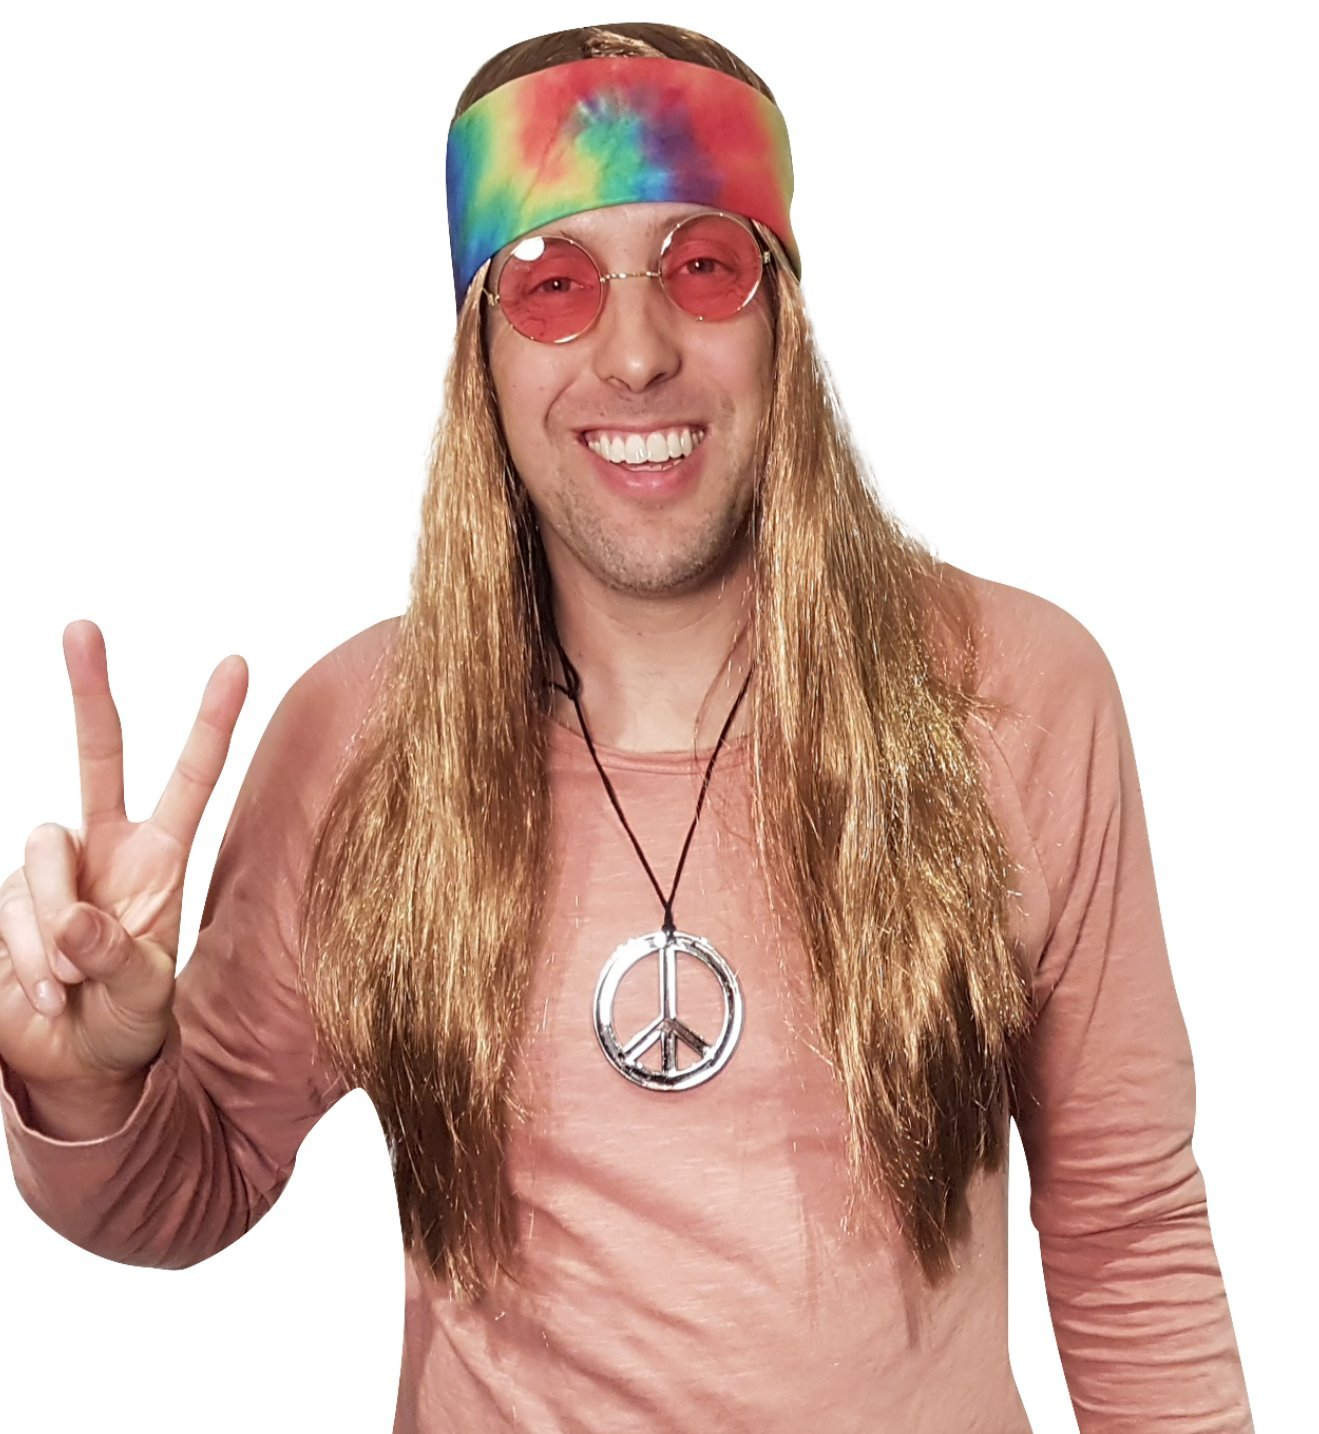 Hippie Wig Costume with Tie Dye Bandana 60s 70s Hippy Woodstock Festival Gear